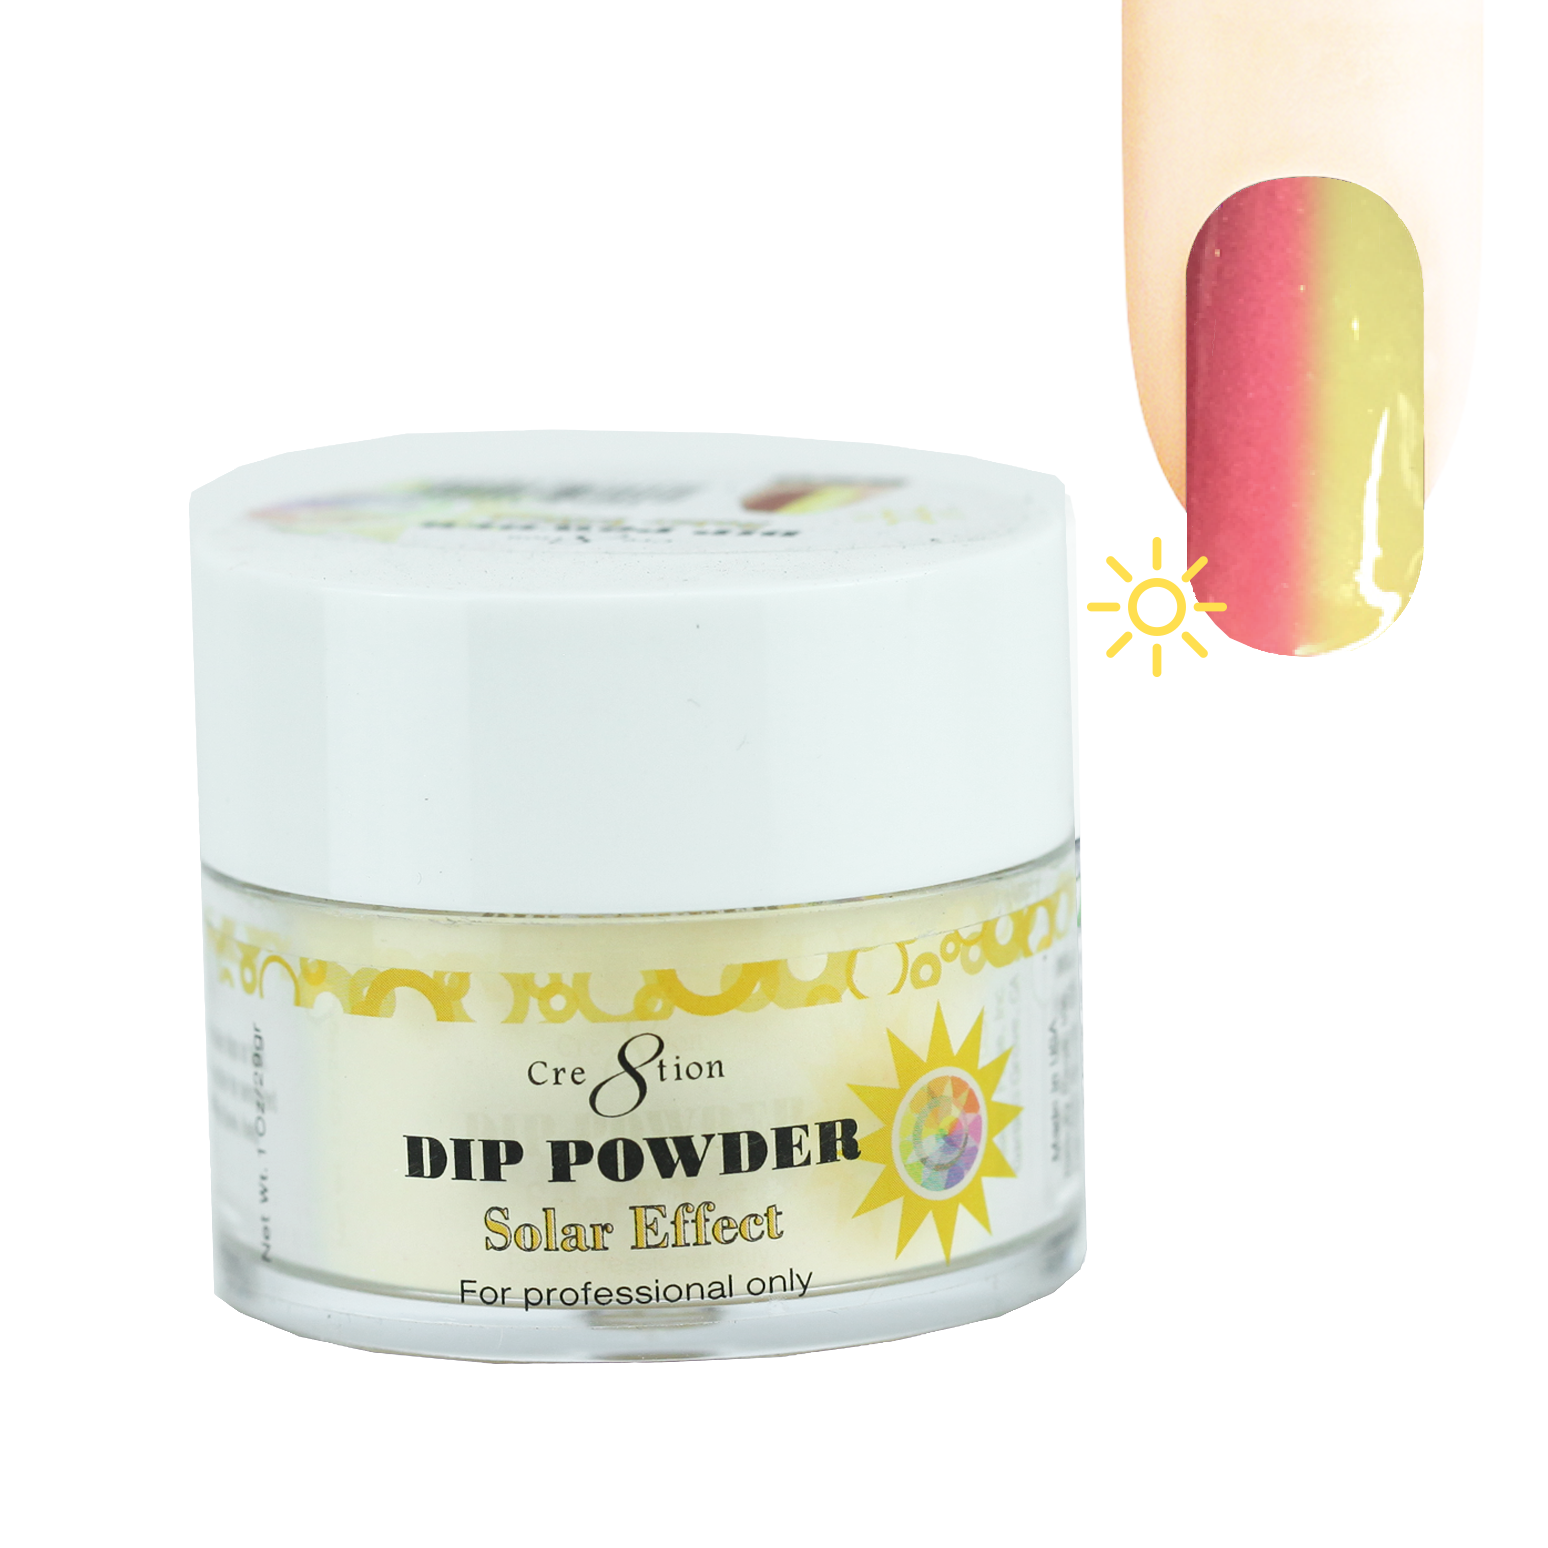 Cre8tion Dipping Powder Solar Effect S20